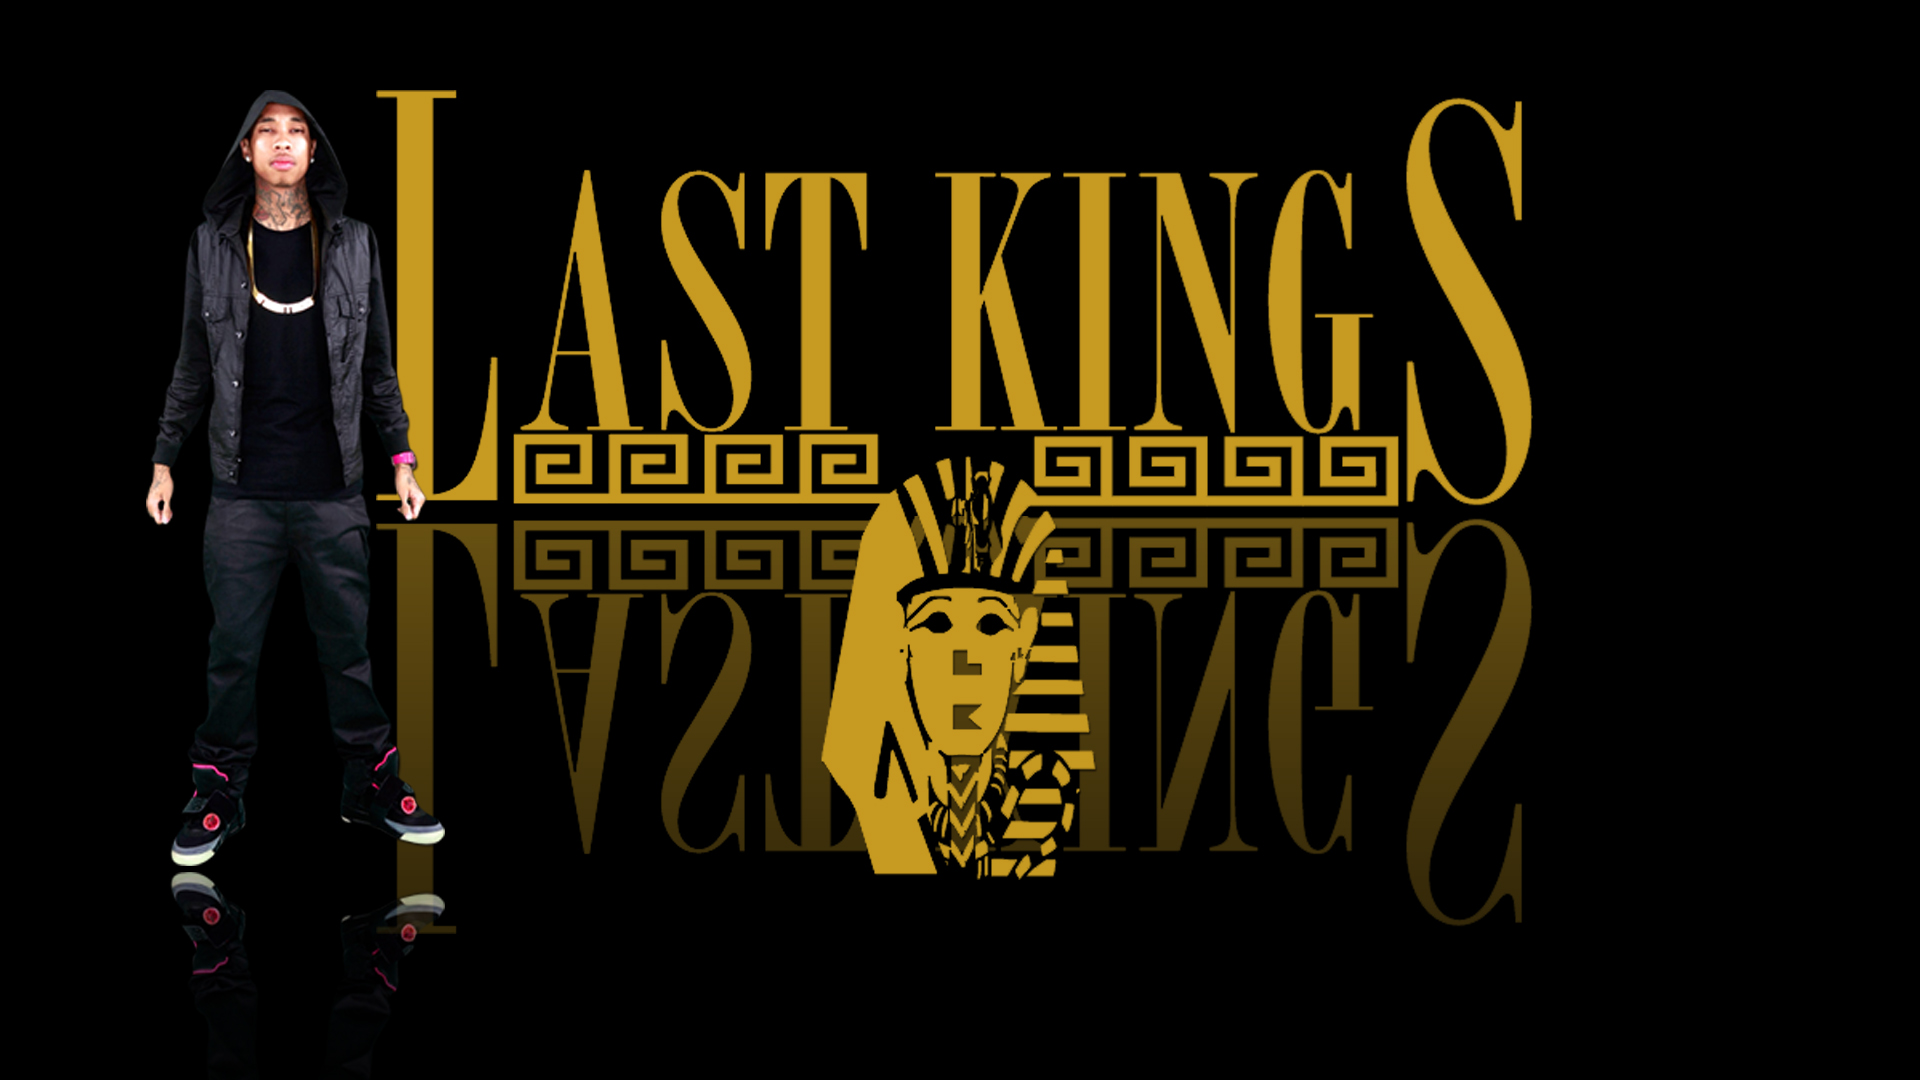 last kings logo wallpaper live wallpaper for android